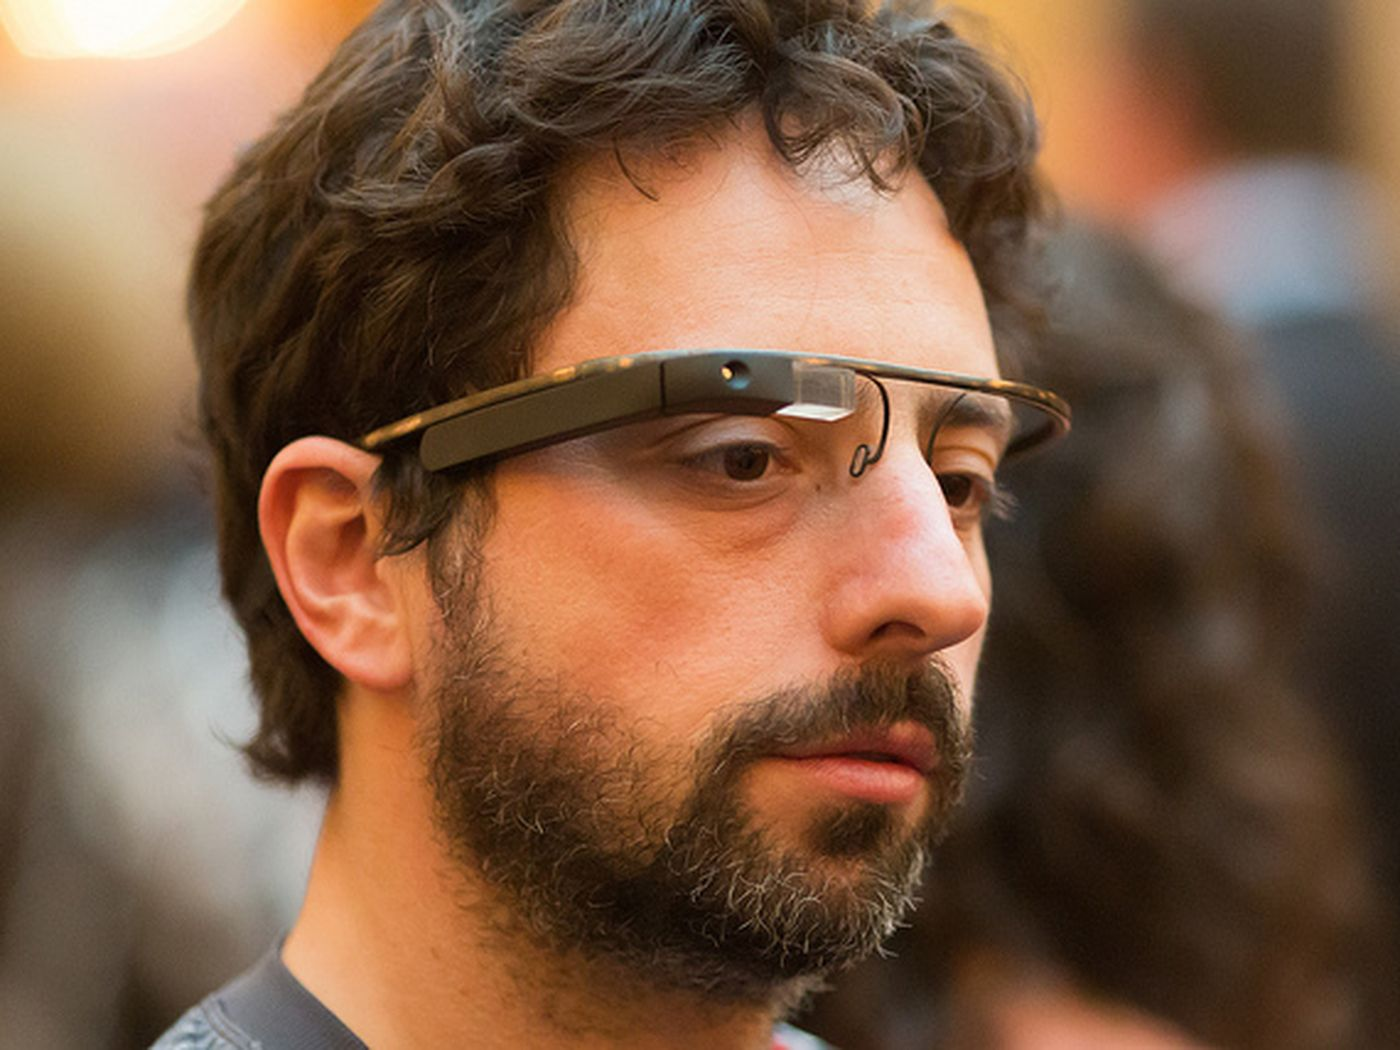 Google Project Glass modeled by Sergey Brin first high res photos 1400x1050